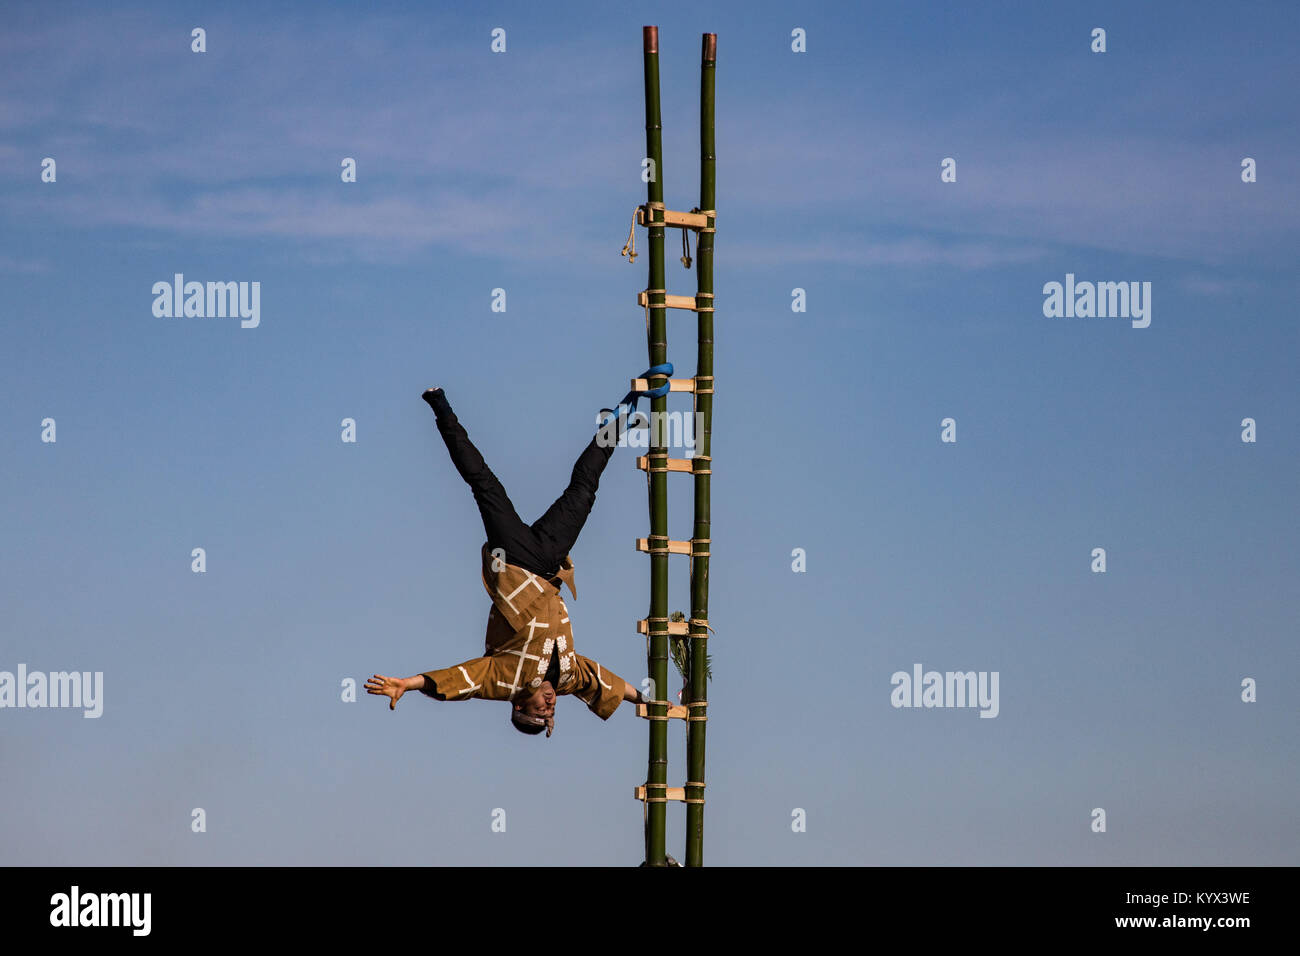 Dezome-shiki Edo Firefighter Stunts - Dezome-shiki is an annual event that takes place early January each year, - Stock Image